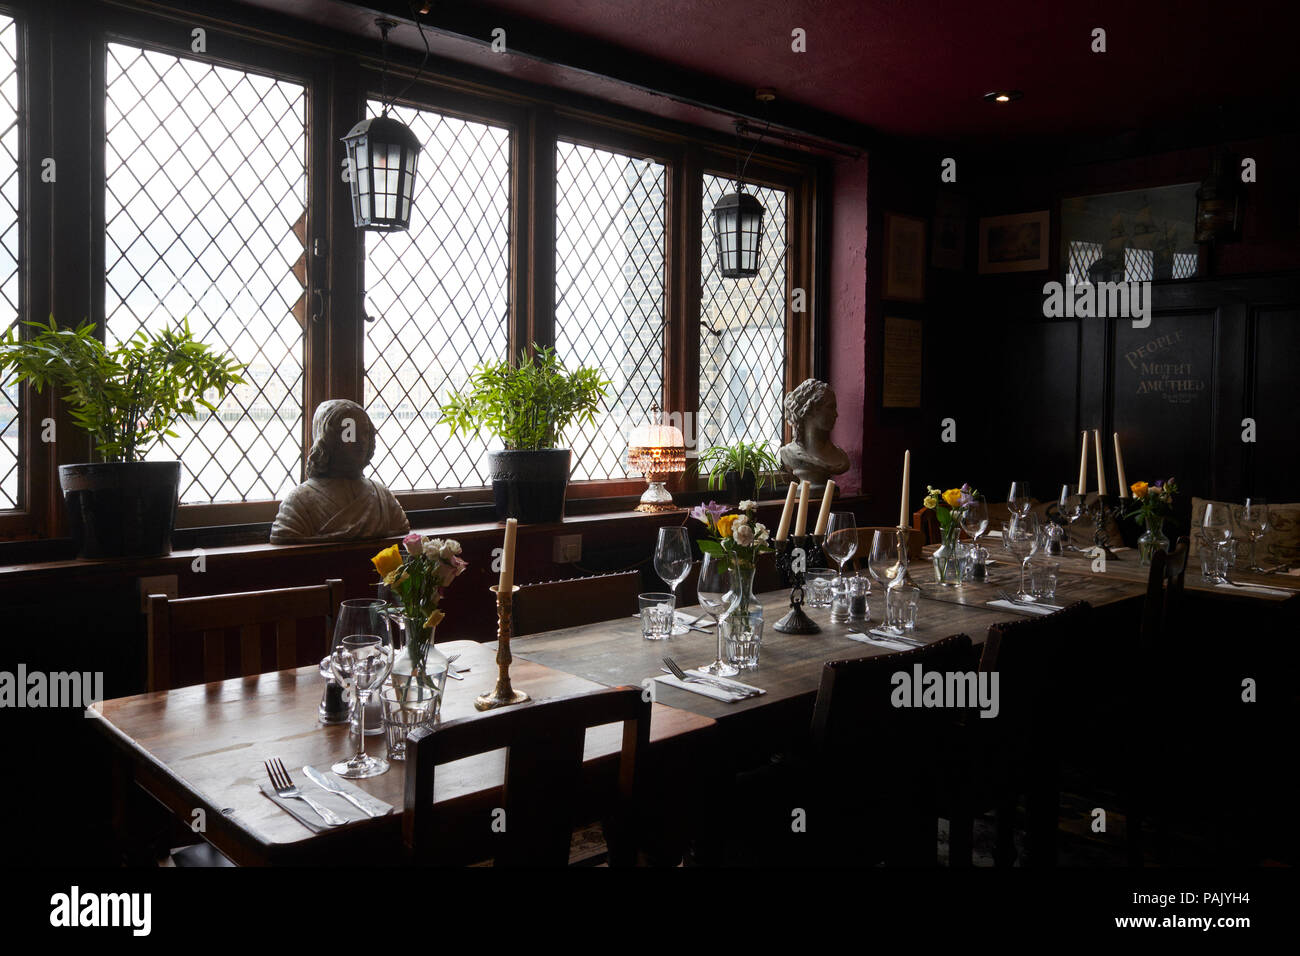 Der Speisesaal im Mayflower Pub, Rotherhithe, London, UK Stockbild